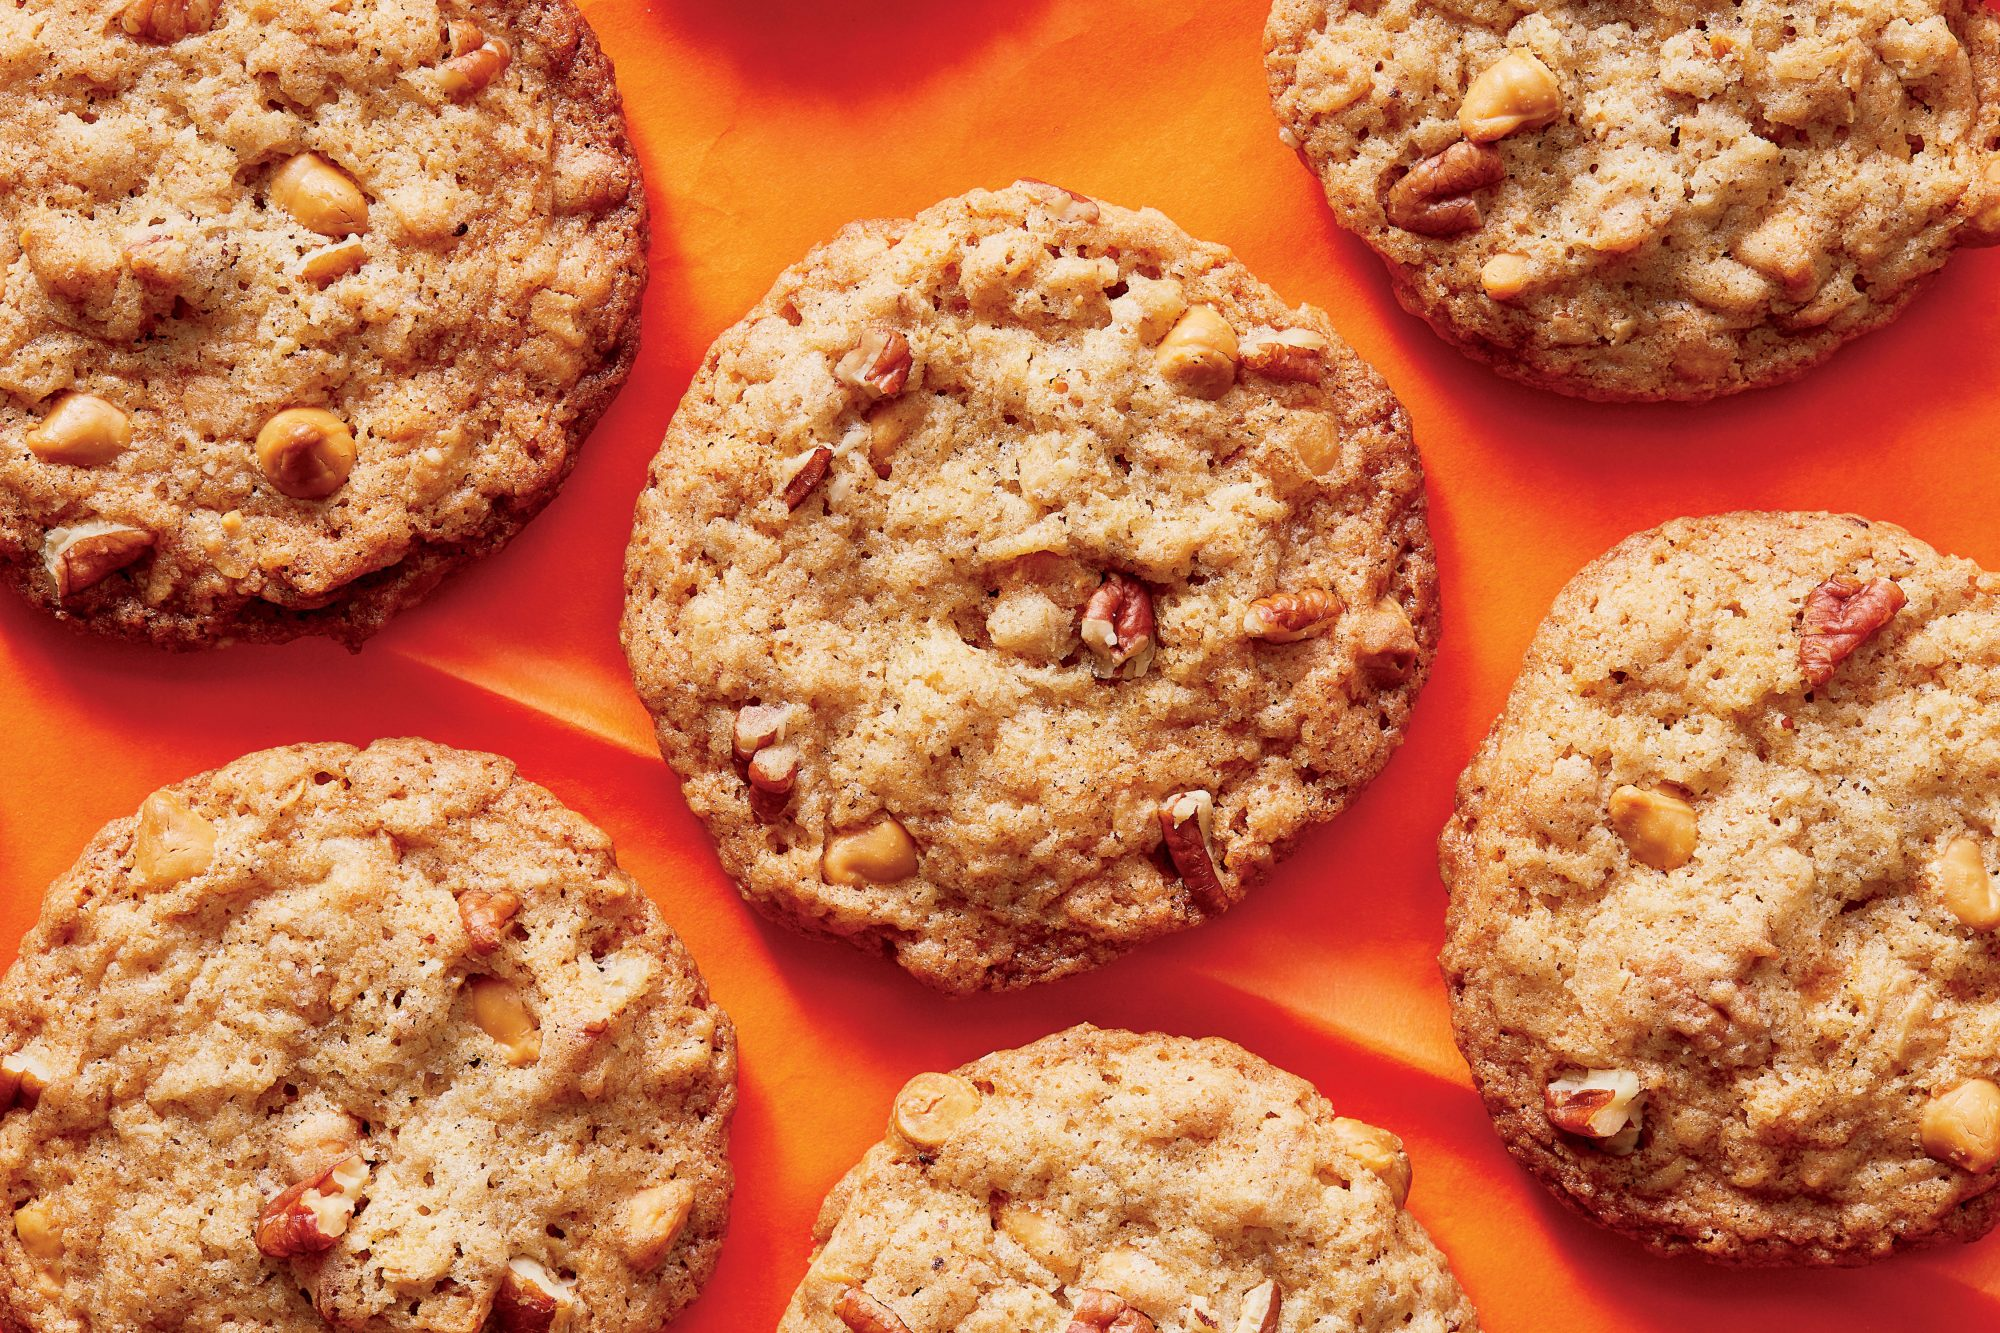 Butterscotch-Toasted Oatmeal Cookies